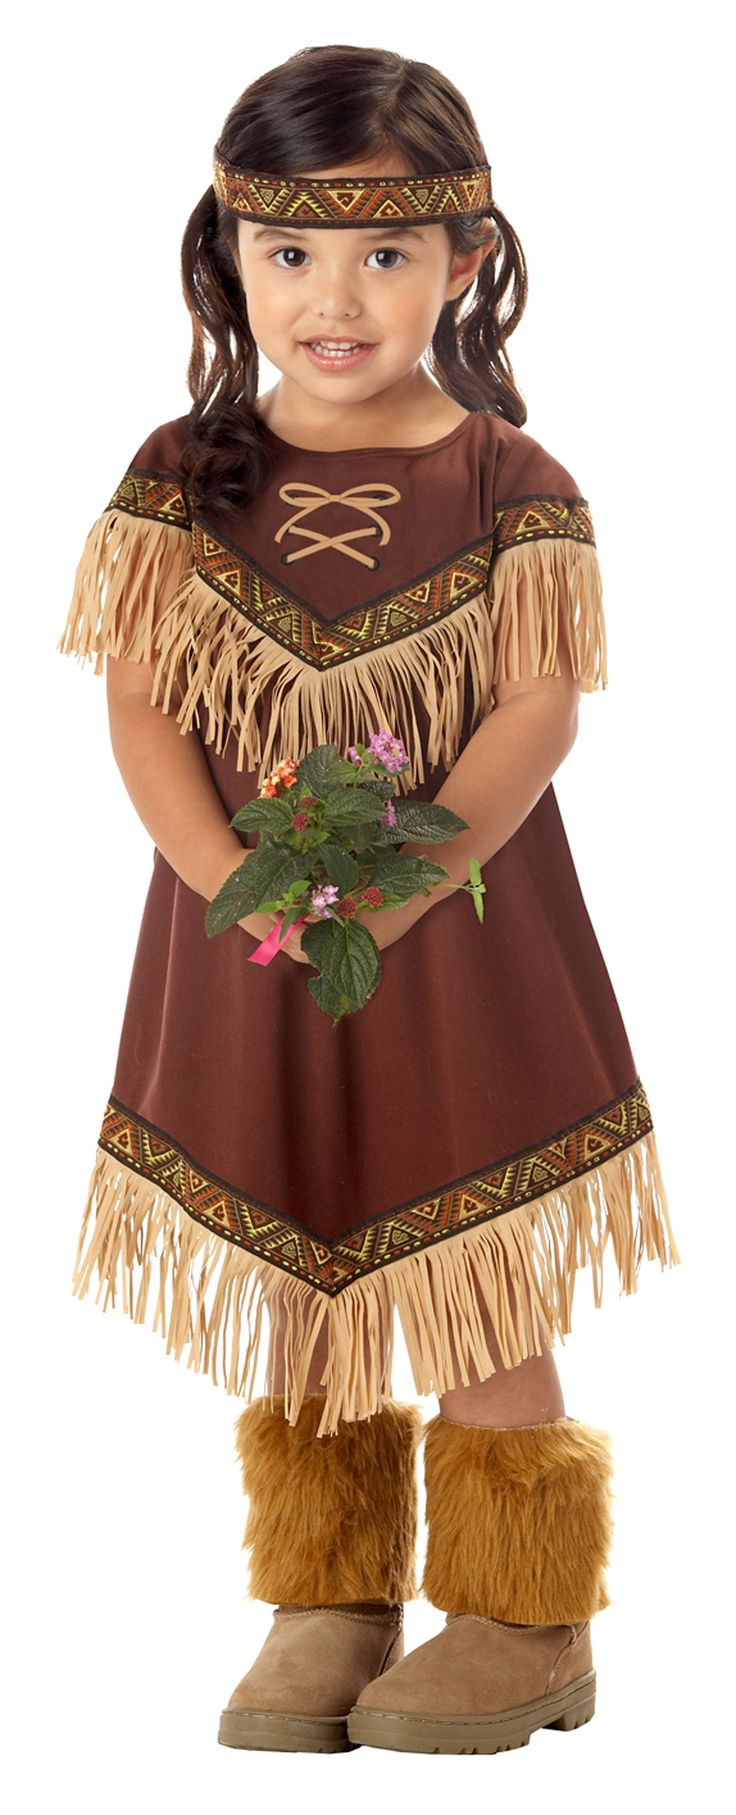 Lil' Indian Princess Toddler / Child Costume from BuyCostumes.com